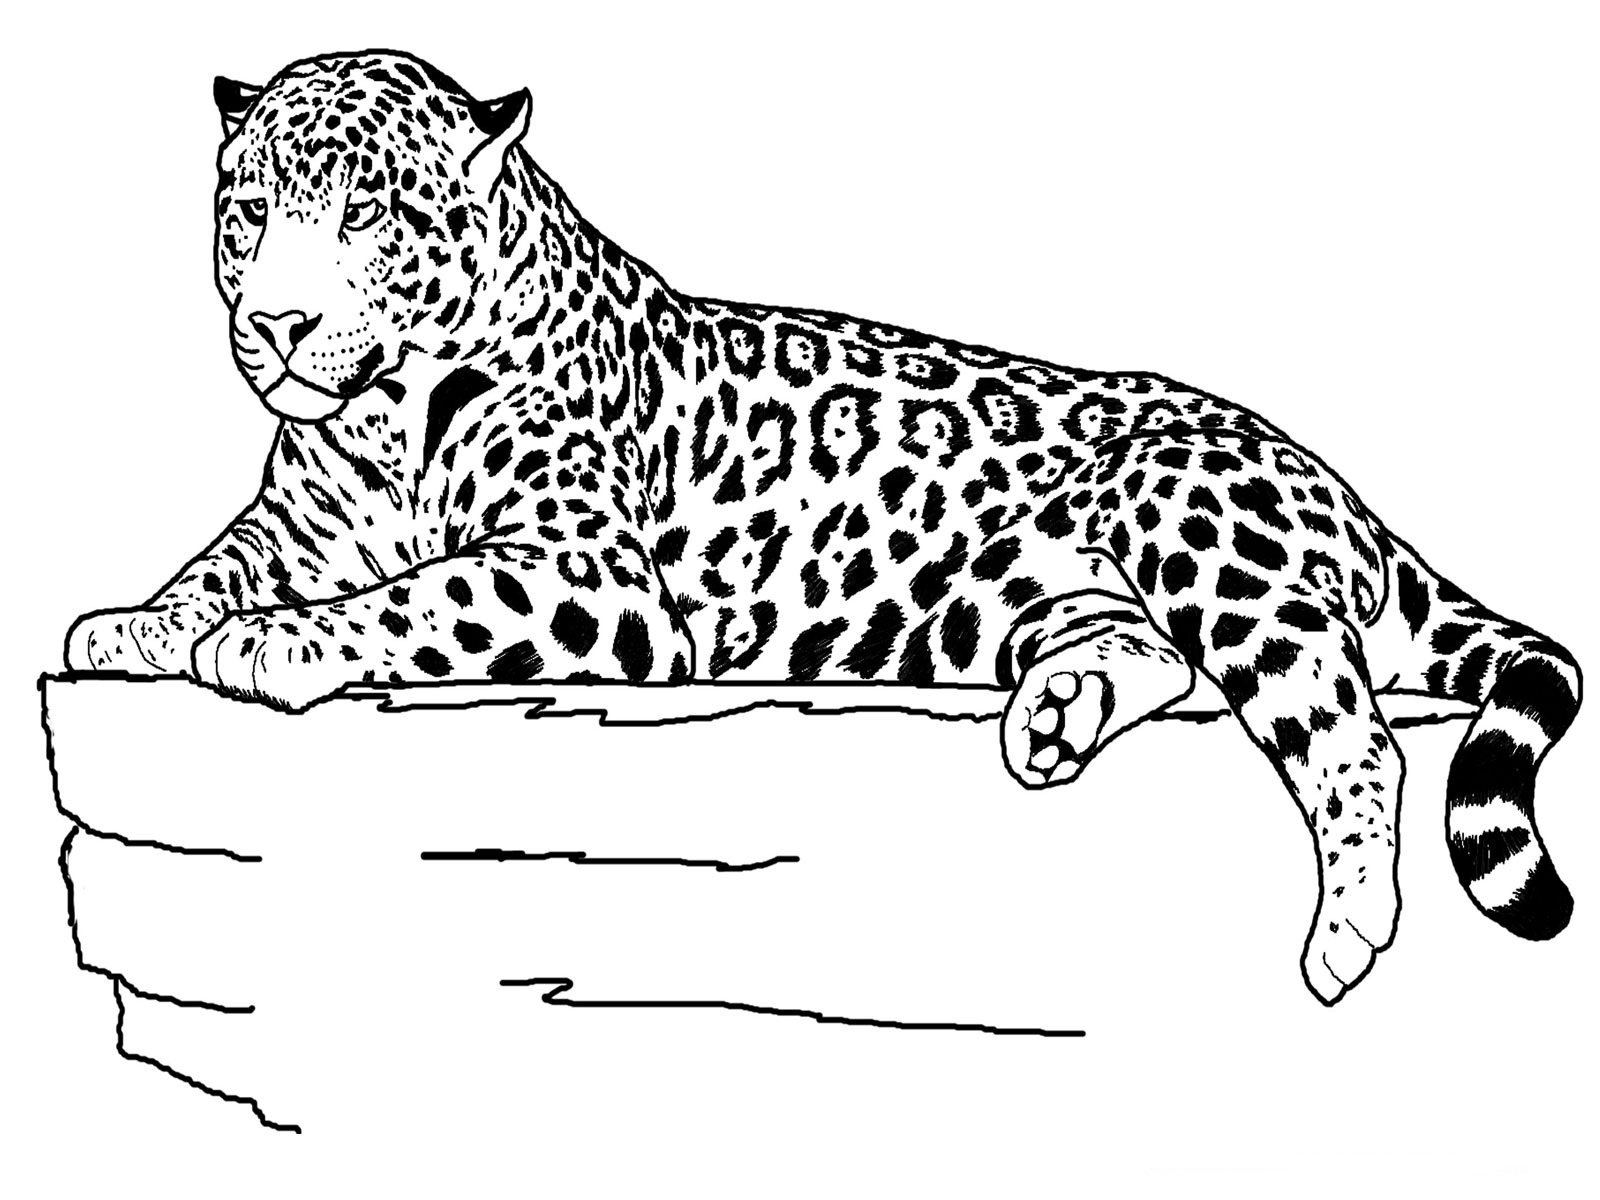 Cheetah Coloring Page for Kids